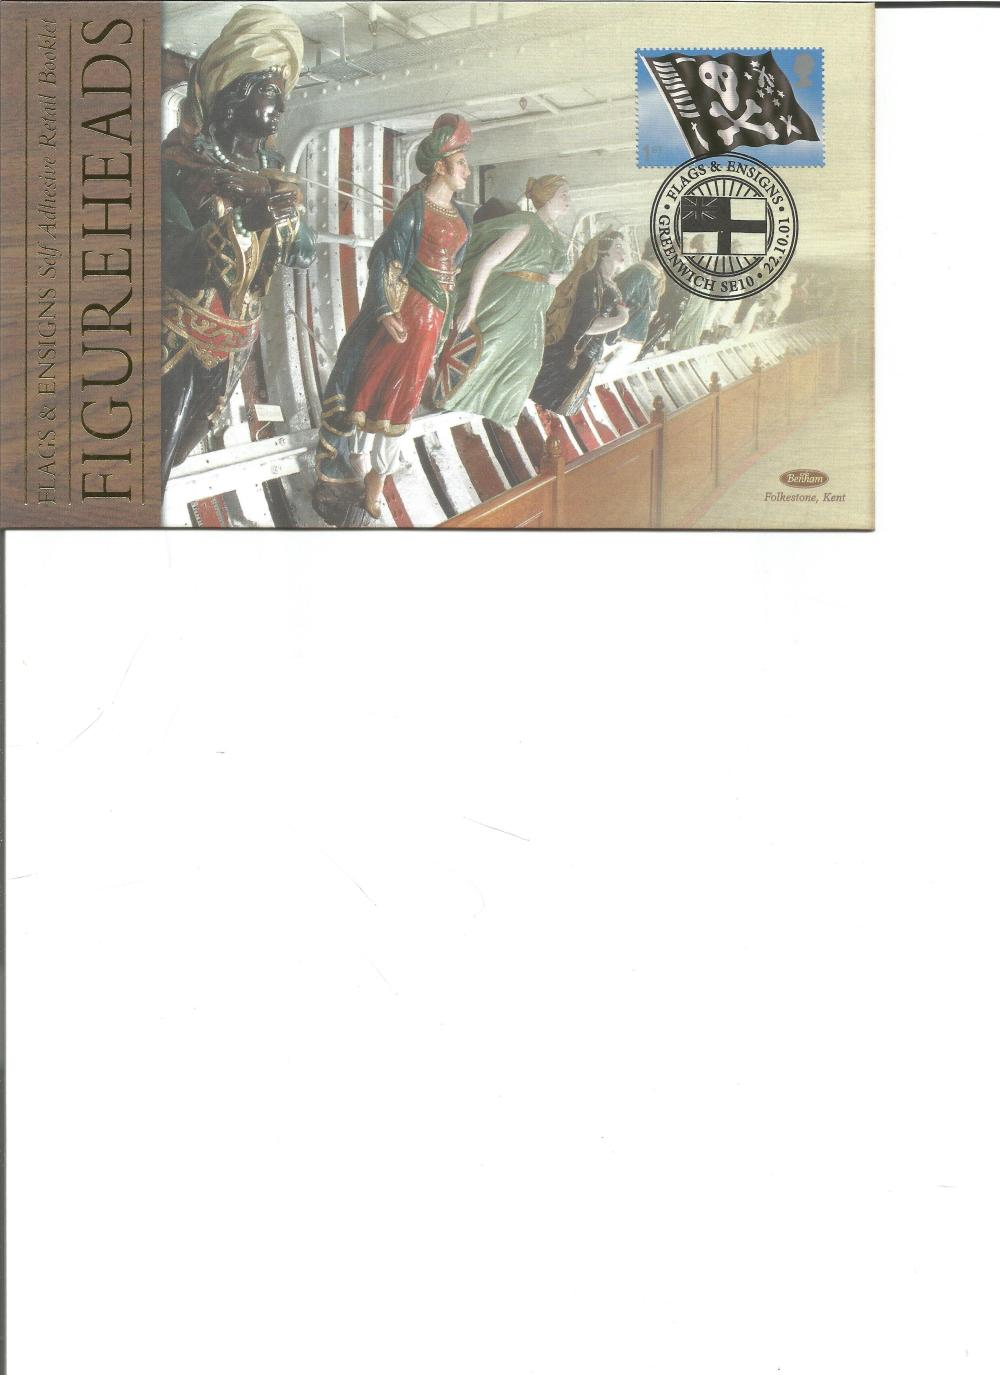 FDC Benham pair of covers Flags and Ensigns Figure Heads Retail Booklet BSSP64-65 PM 22. 10. 01.